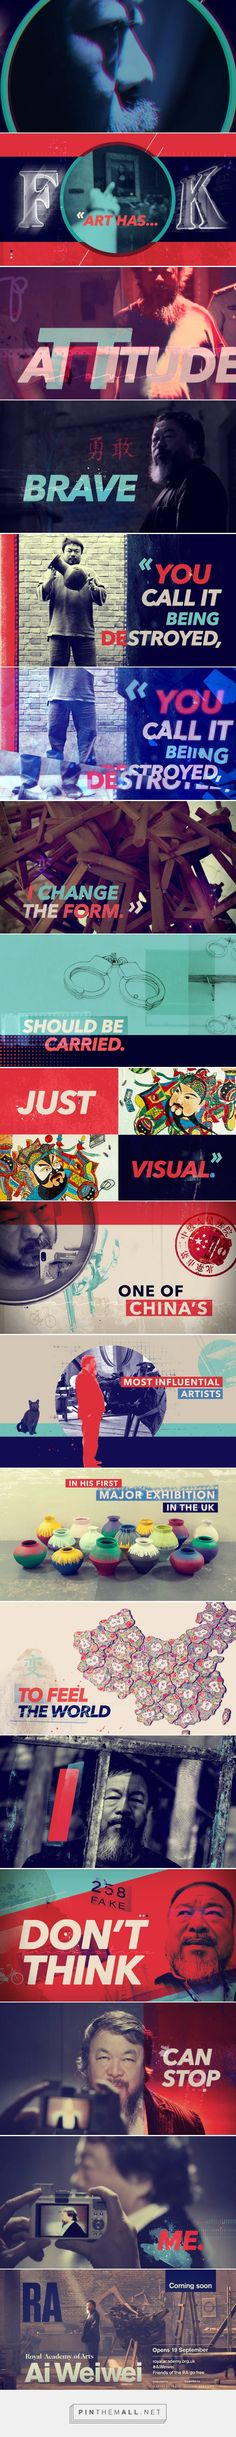 Royal Academy | Ai WeiWei Promo on Behance - created via http://pinthemall.net